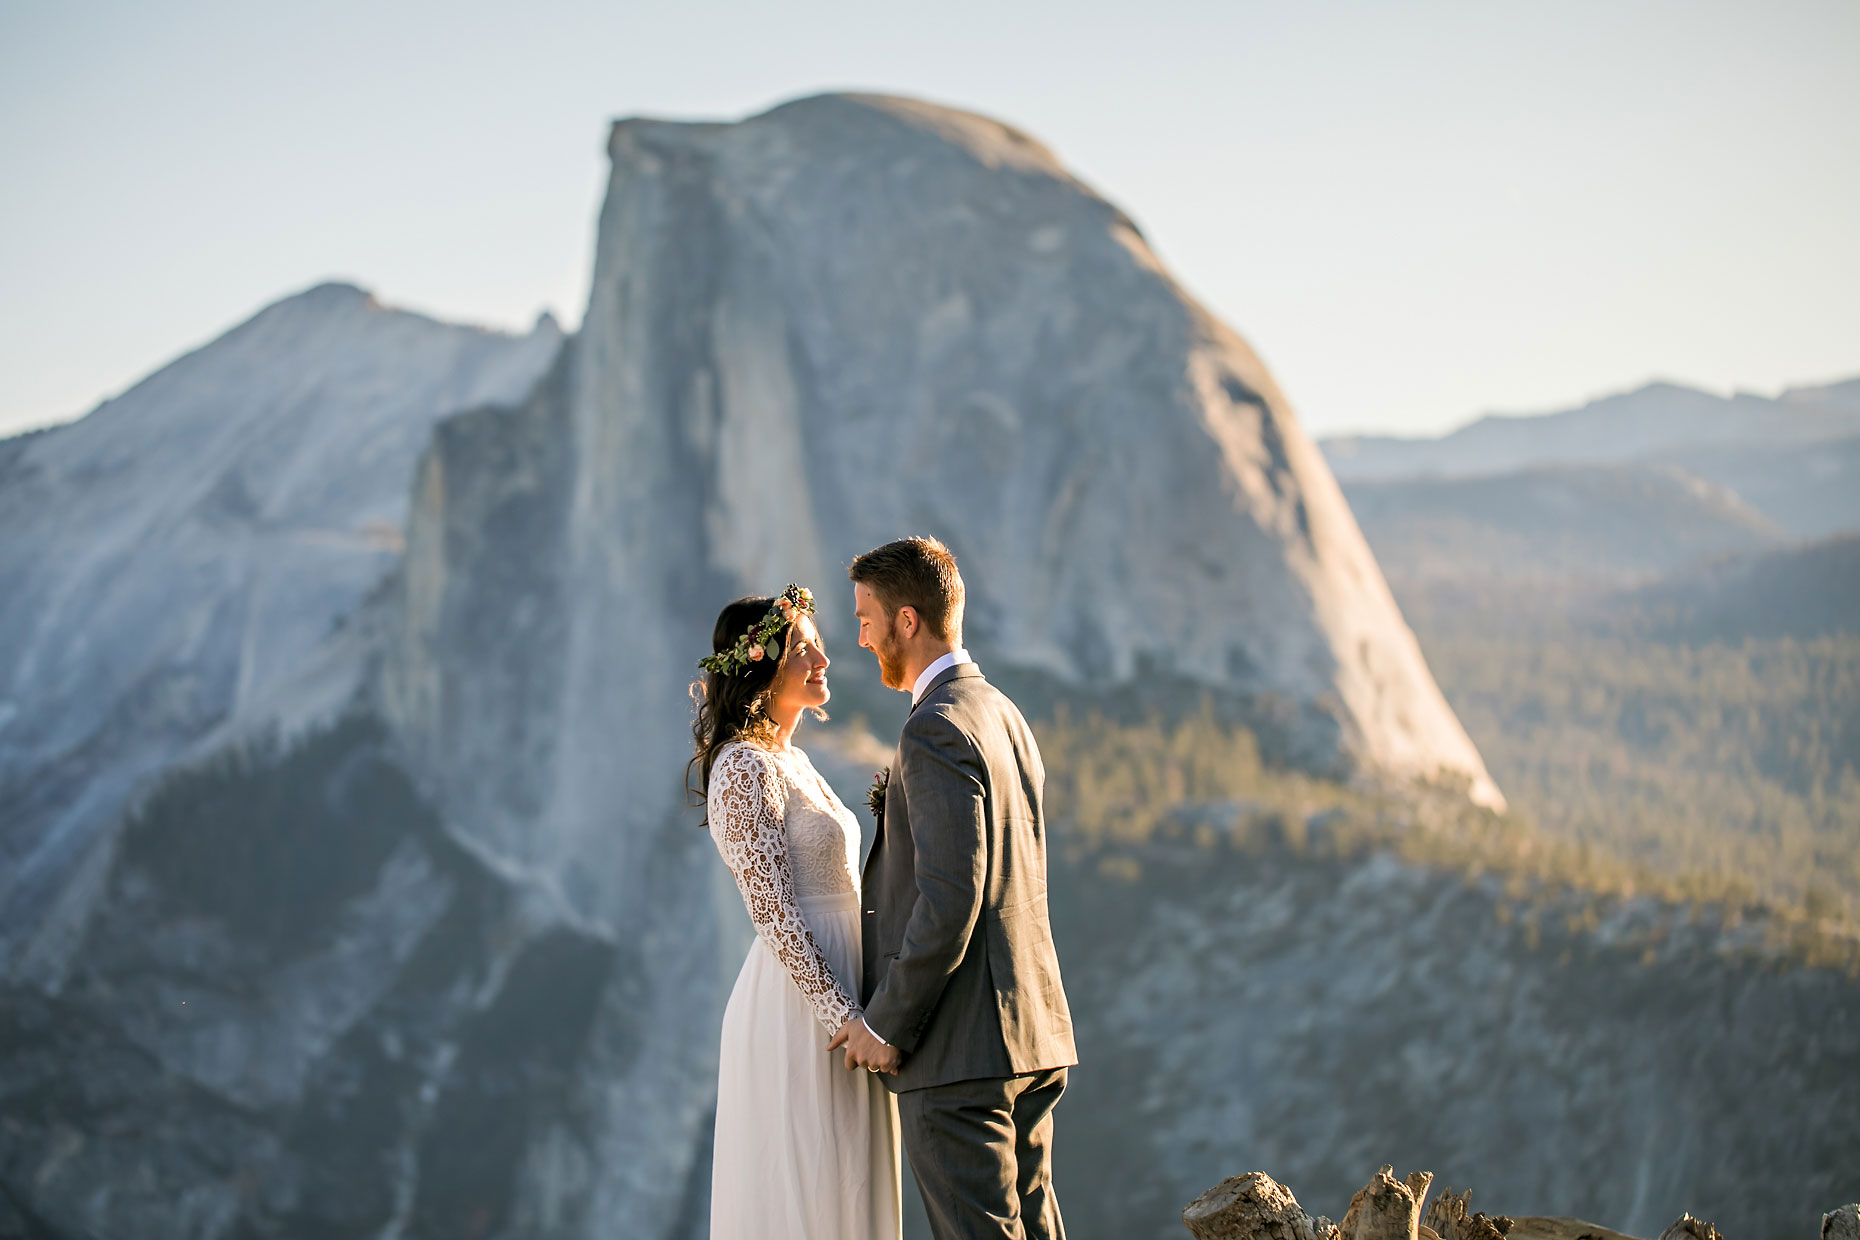 Wedding couple at Glacier Point in Yosemite.